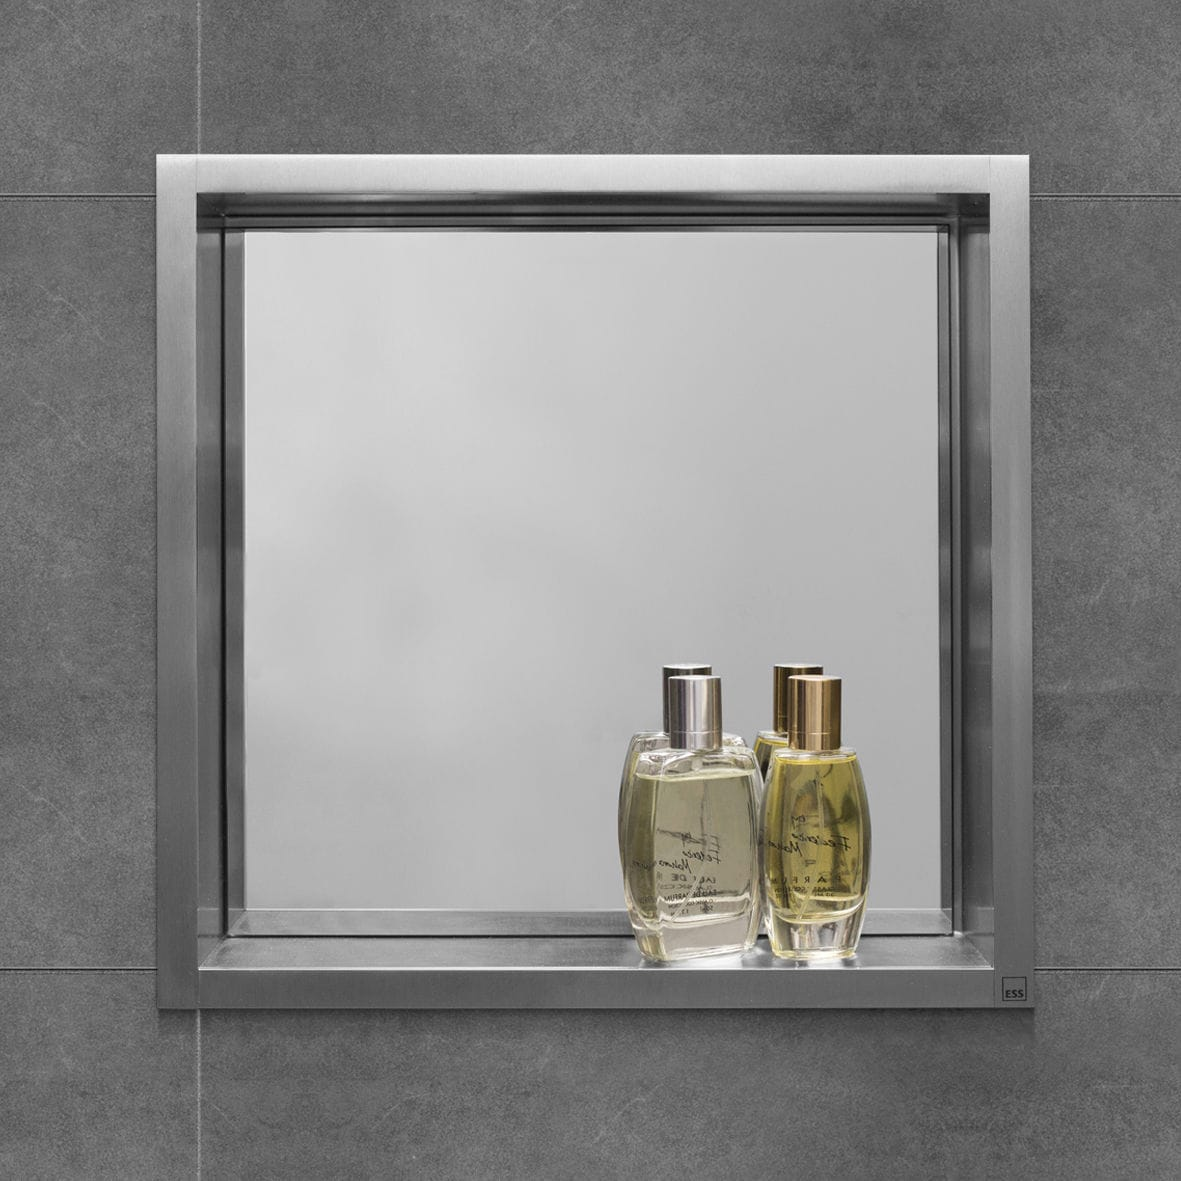 Bathroom wall cabinet with mirror - Mirrored Bathroom Wall Cabinet Ess Container Box Wall Niche With Mirror Easy Sanitary Solutions